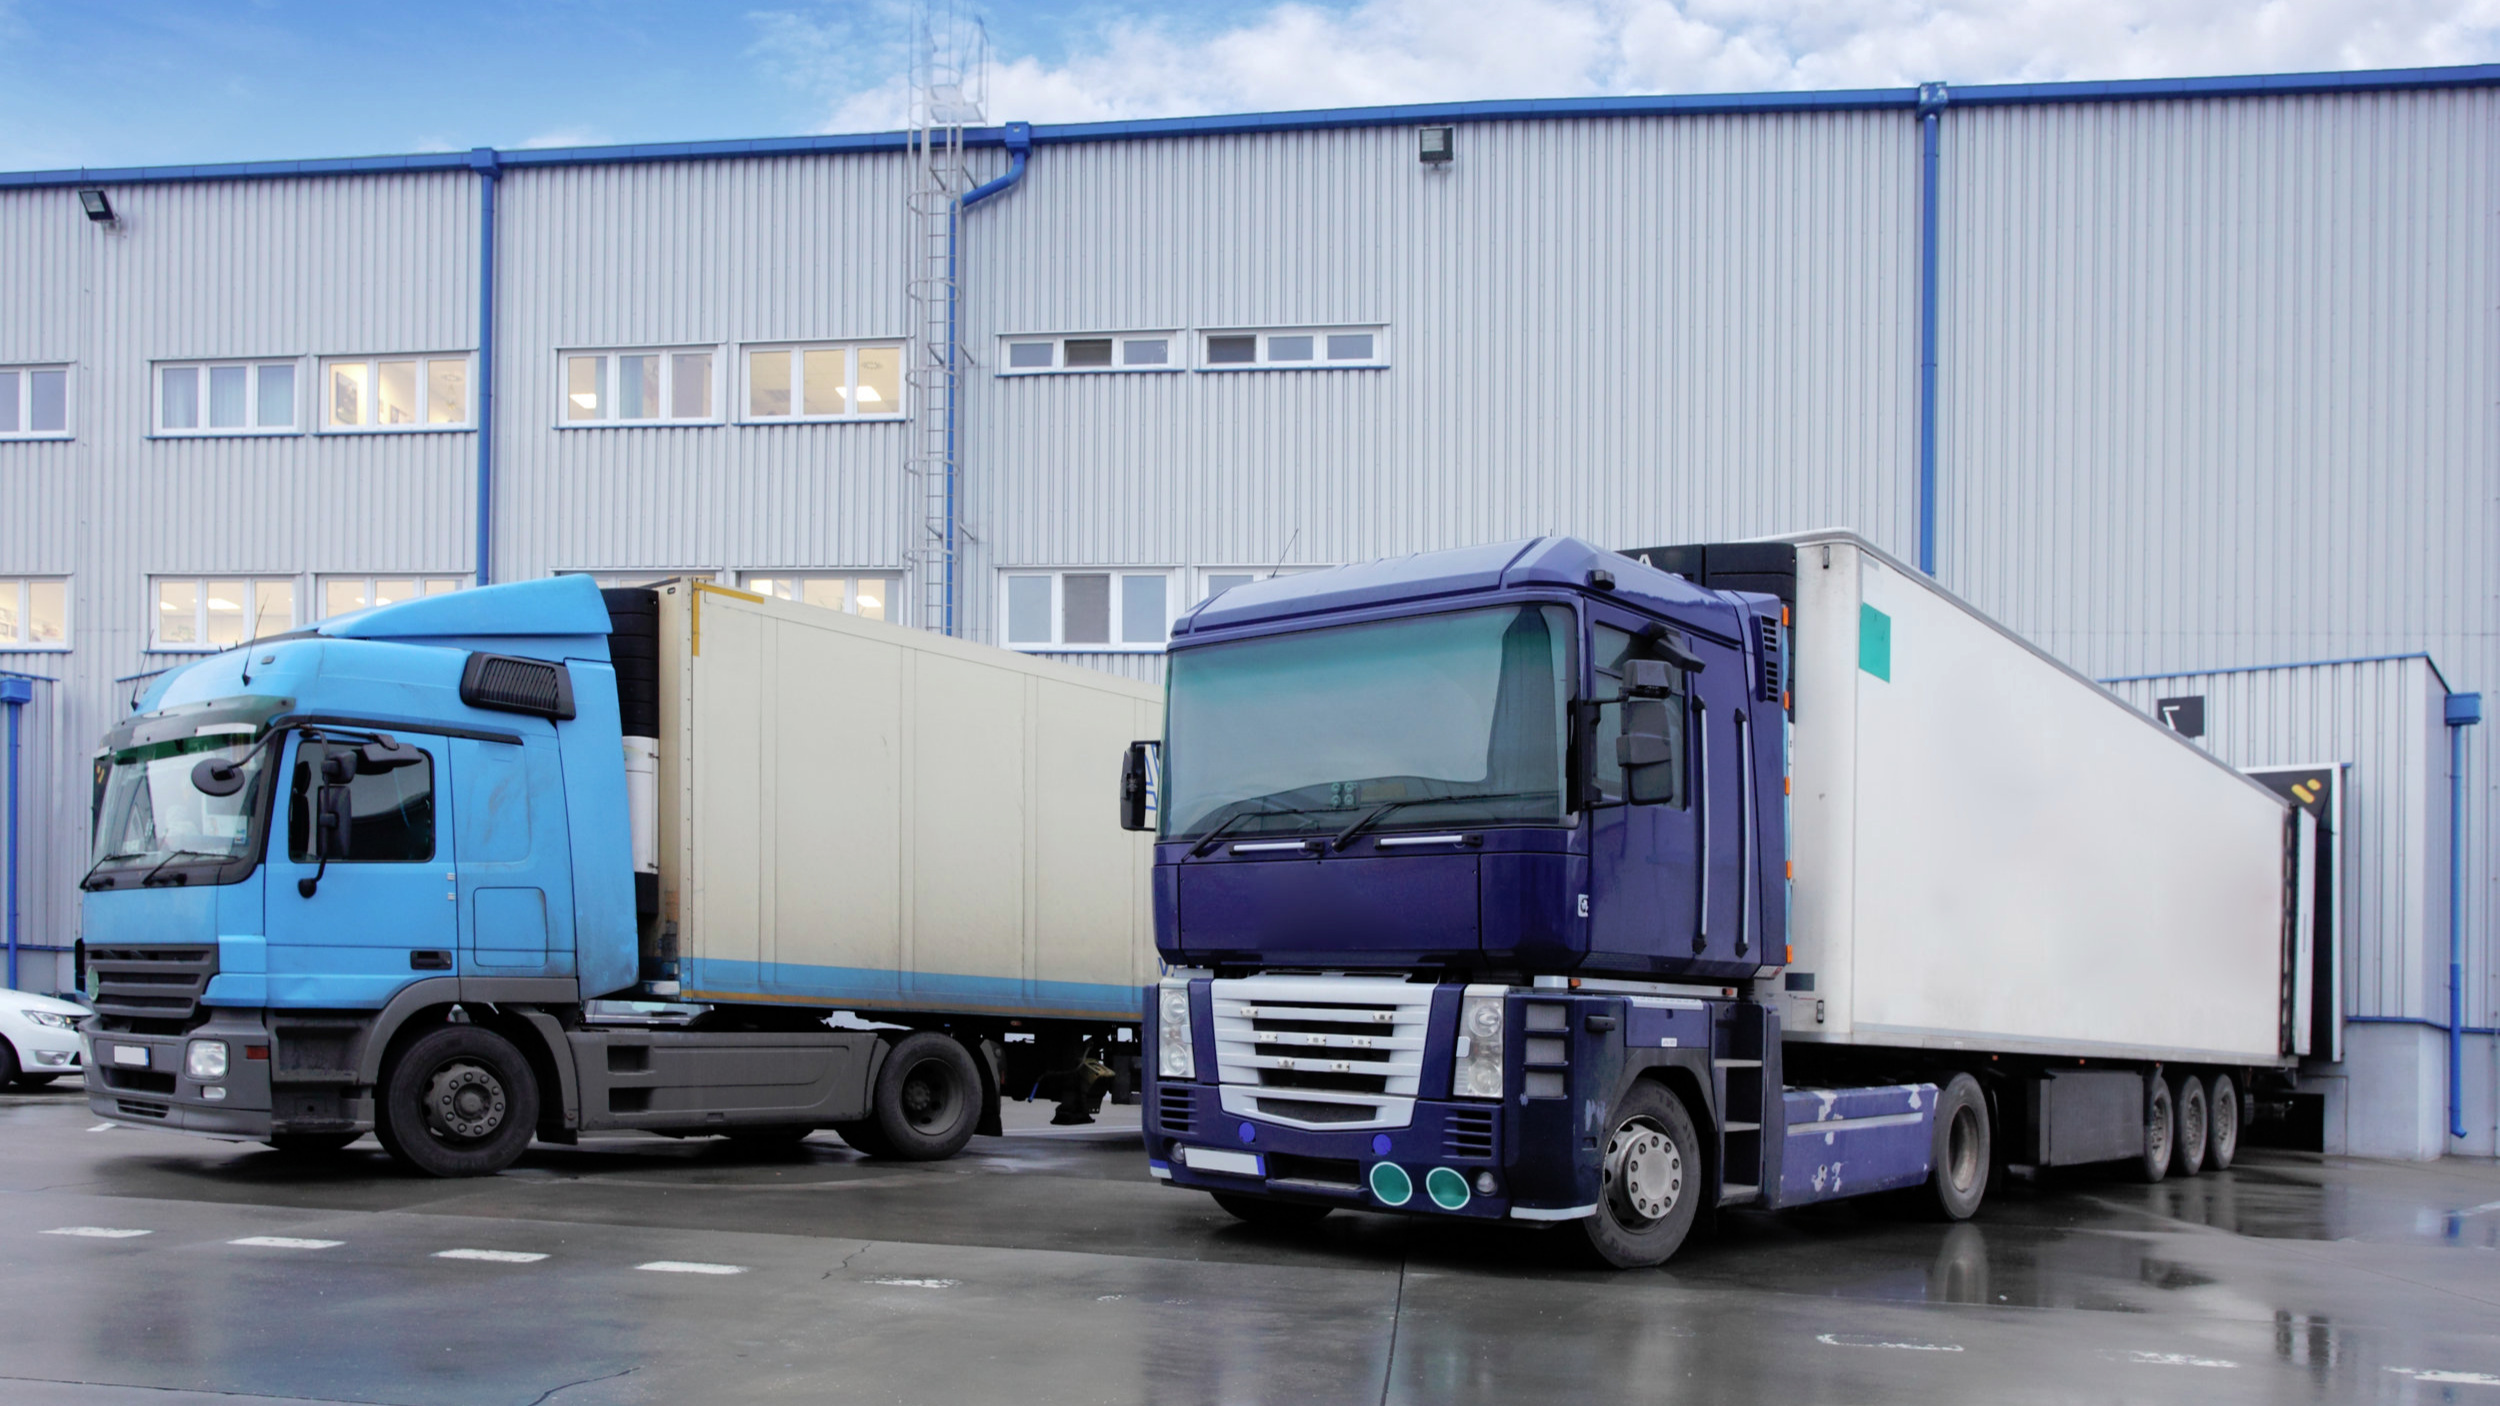 Canva+-+Freight+Transportation+-+Truck+in+the+warehouse-2.jpg